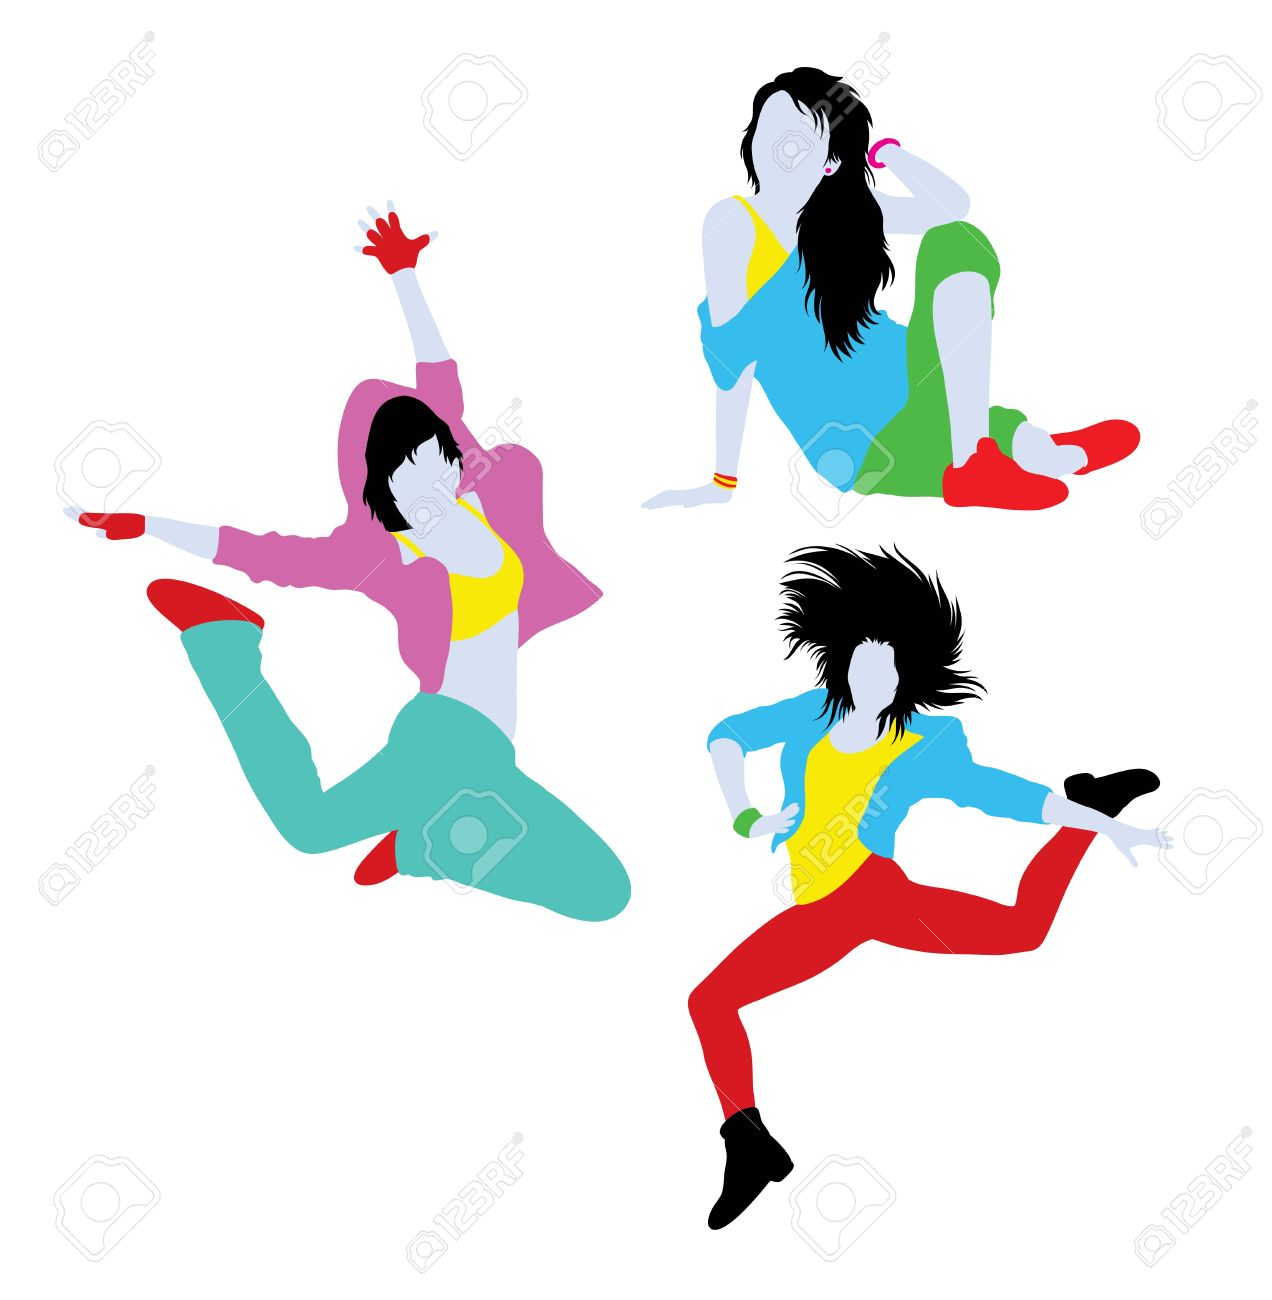 Hip Hop Dancer Silhouettes Illustration Art Vector Design Royalty Free Cliparts Vectors And Stock Illustration Image 64676533